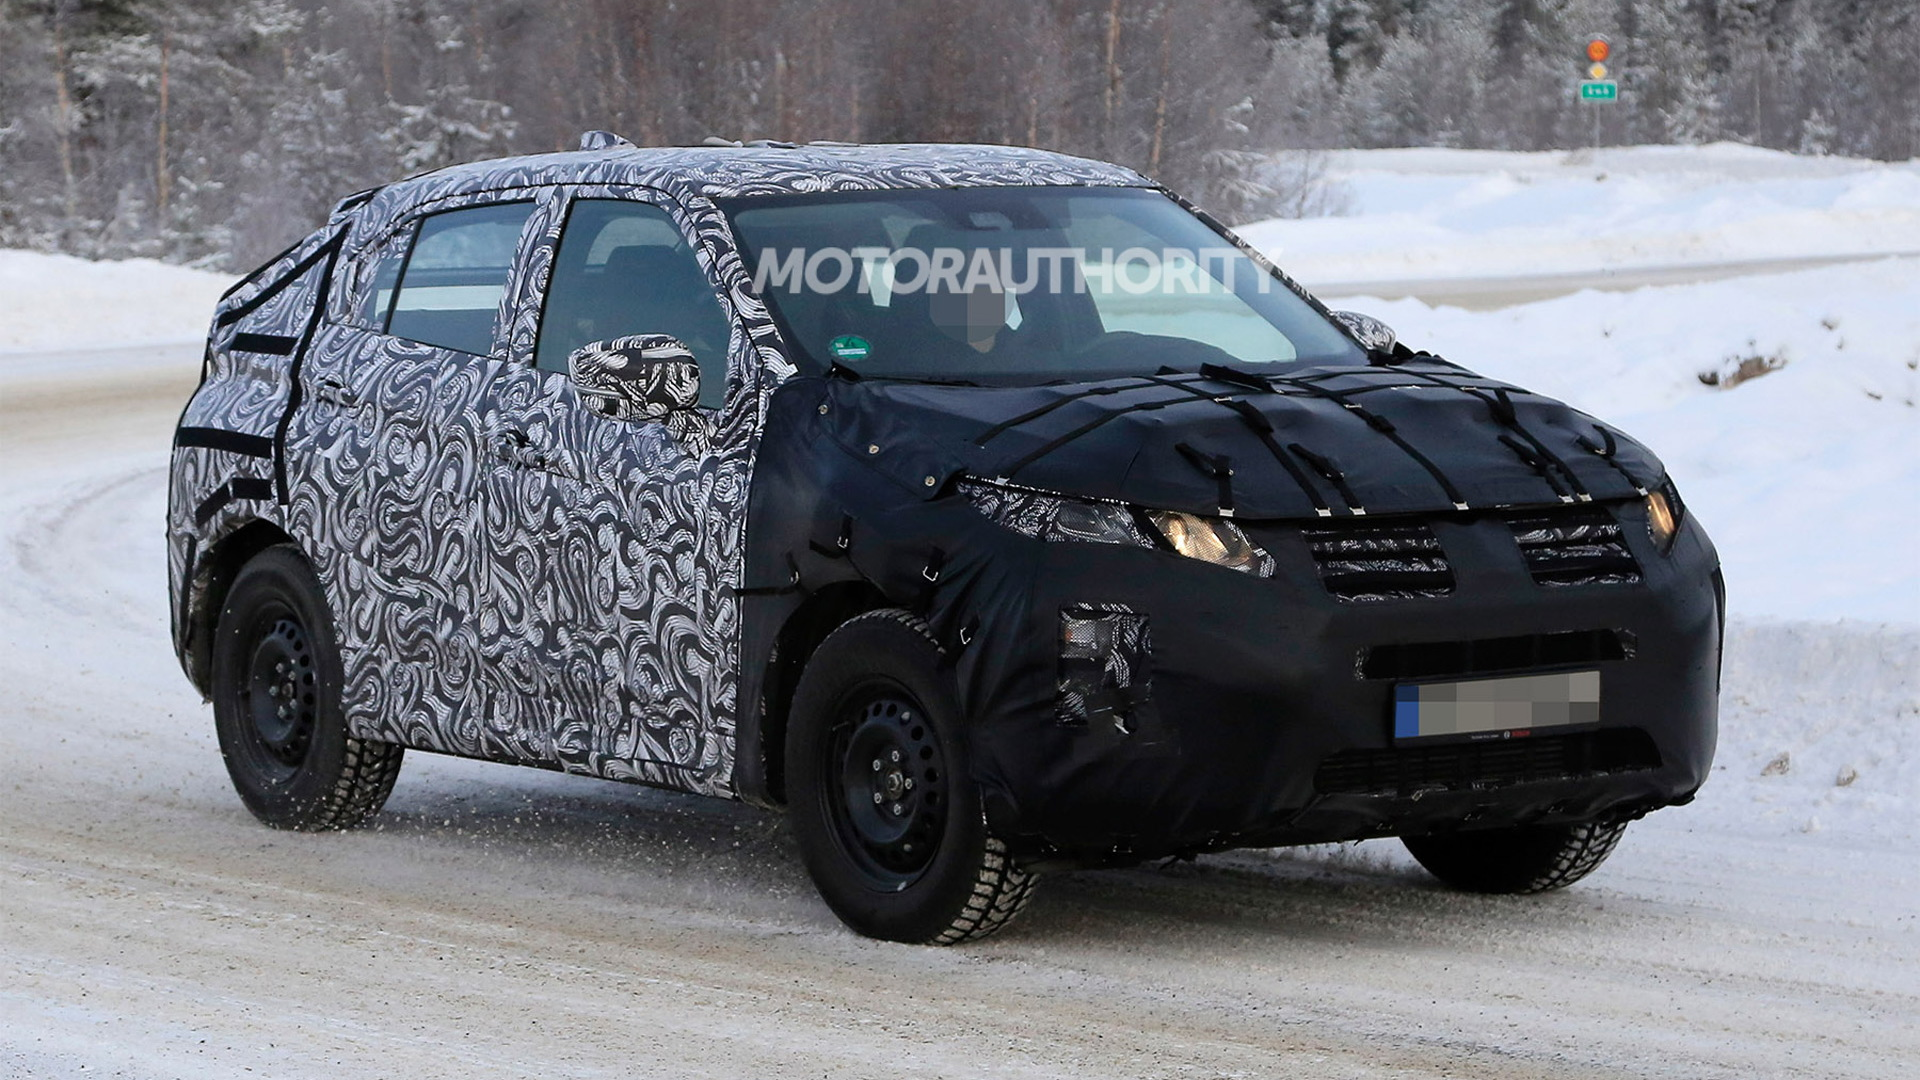 2018 Mitsubishi Eclipse Cross spy shots - Image via S. Baldauf/SB-Medien